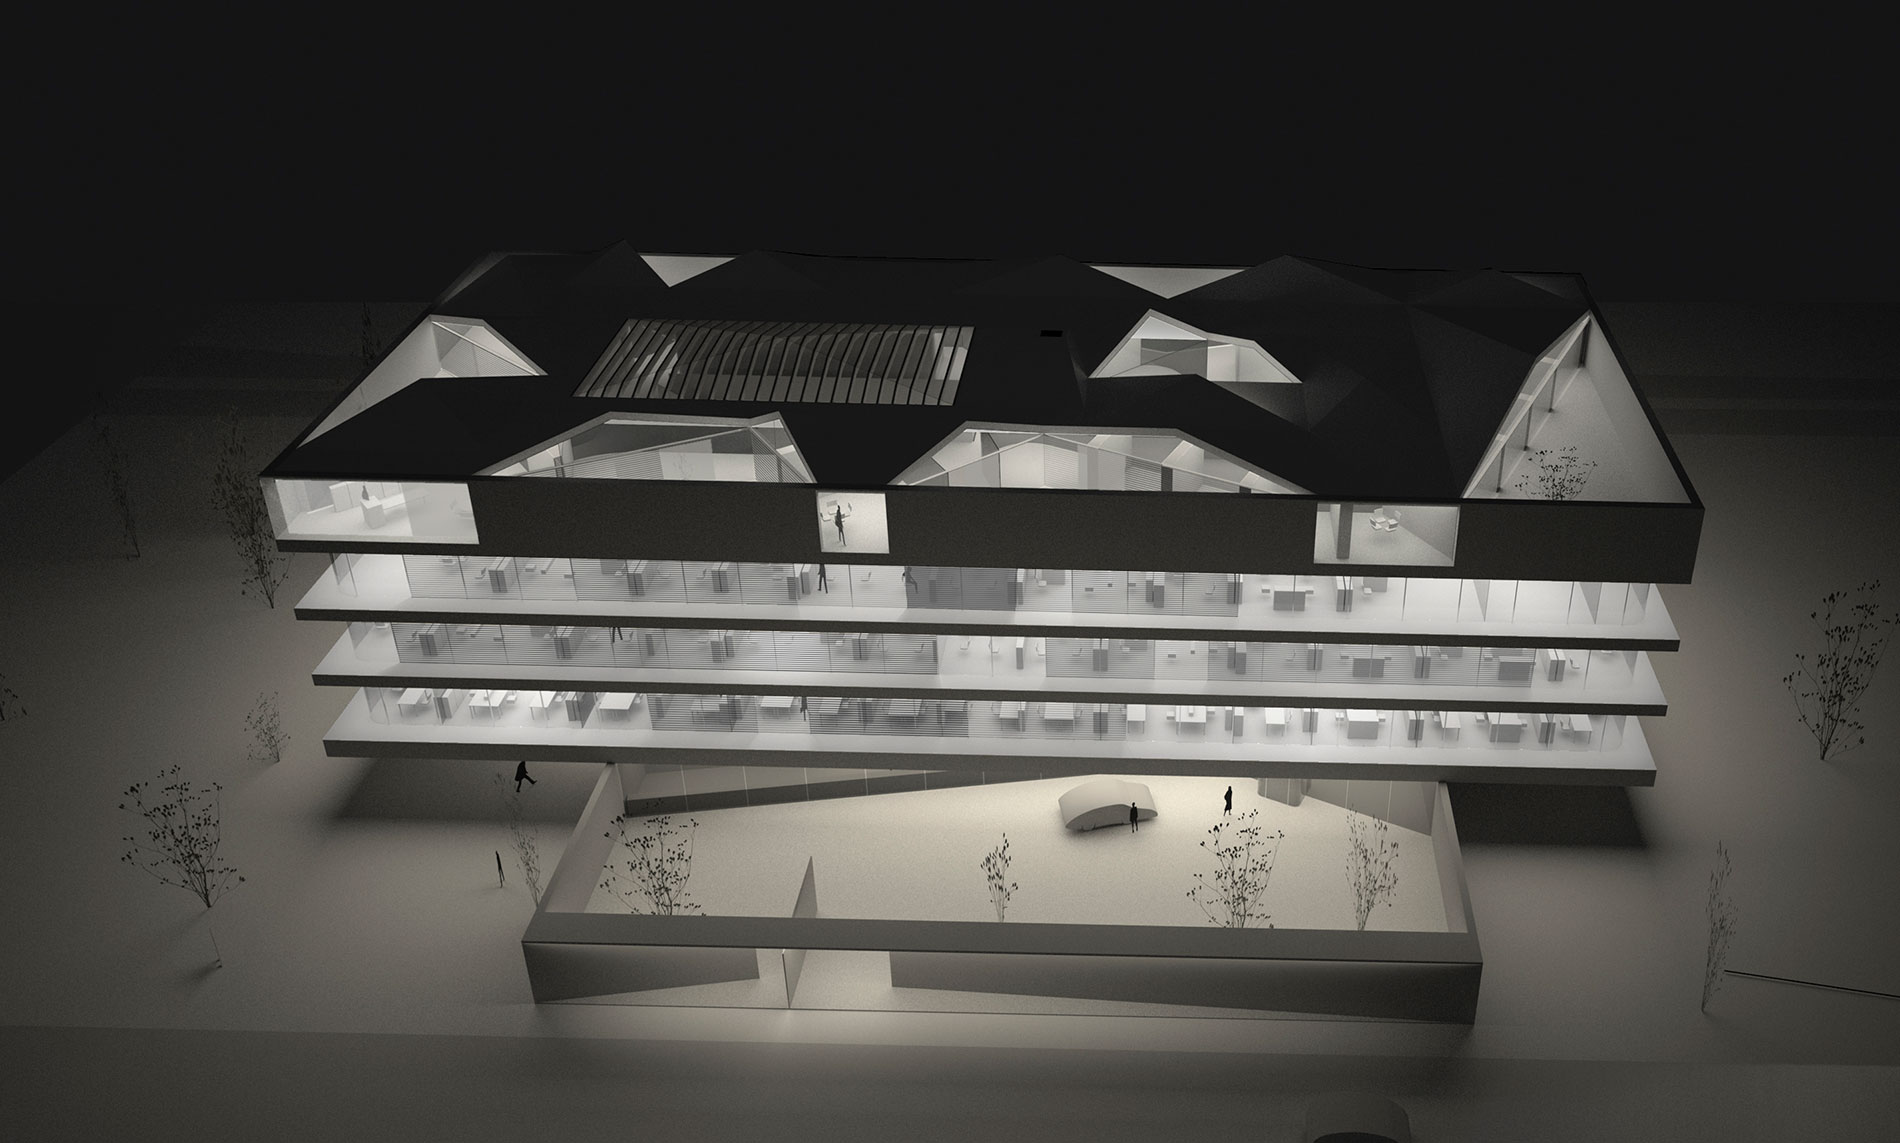 bel-administrative headquarter,model